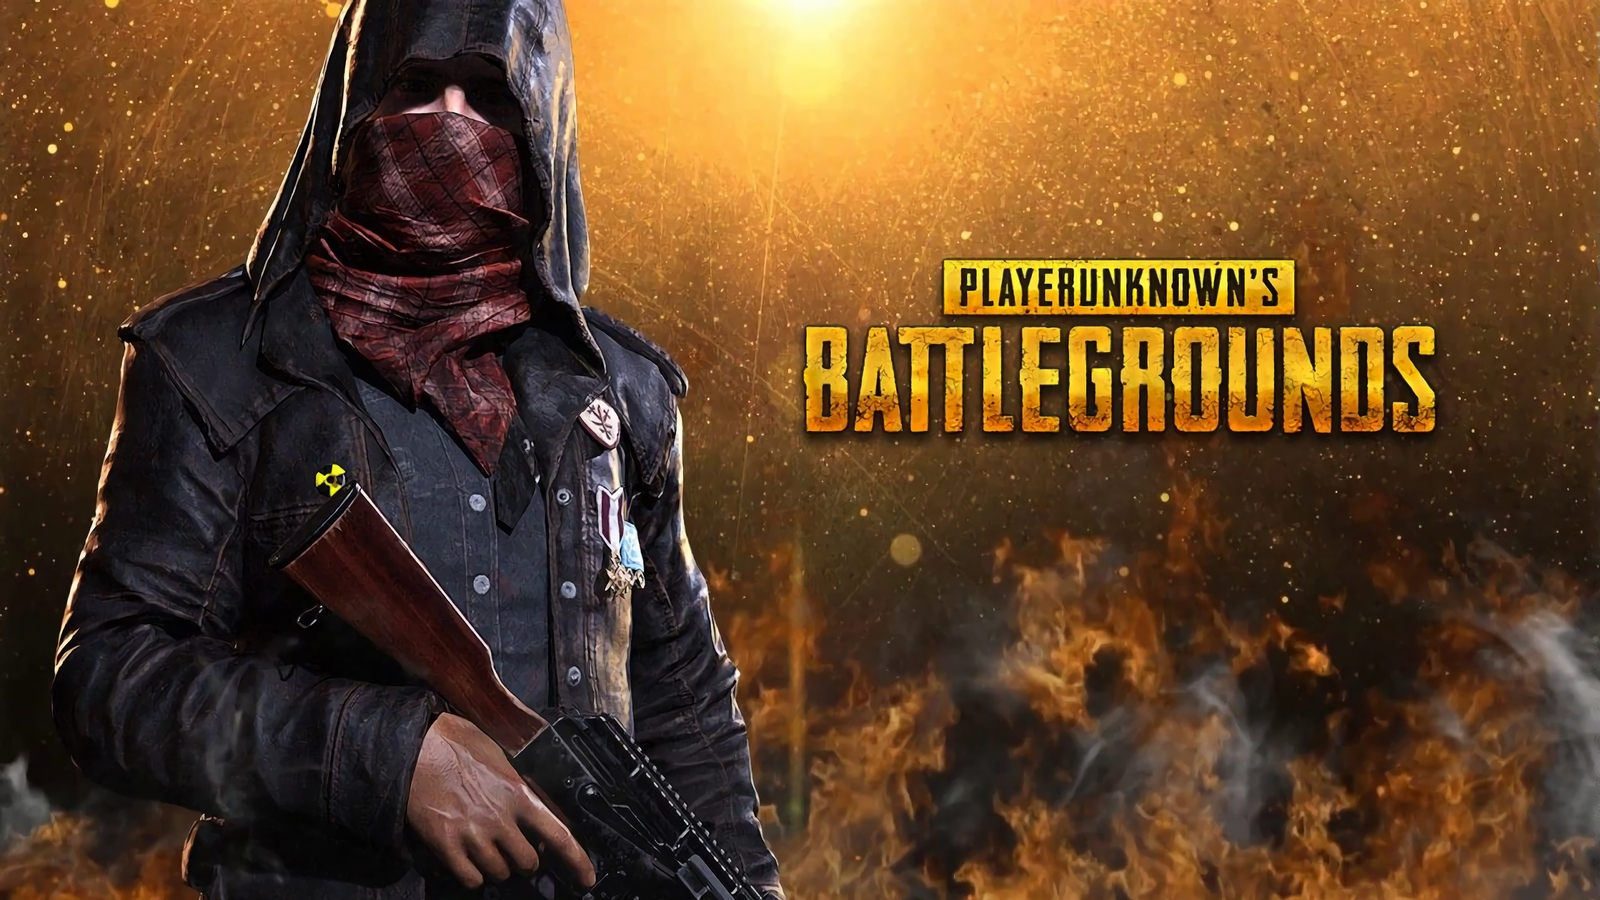 1600x900 4k pubg 1600x900 resolution hd 4k wallpapers, images